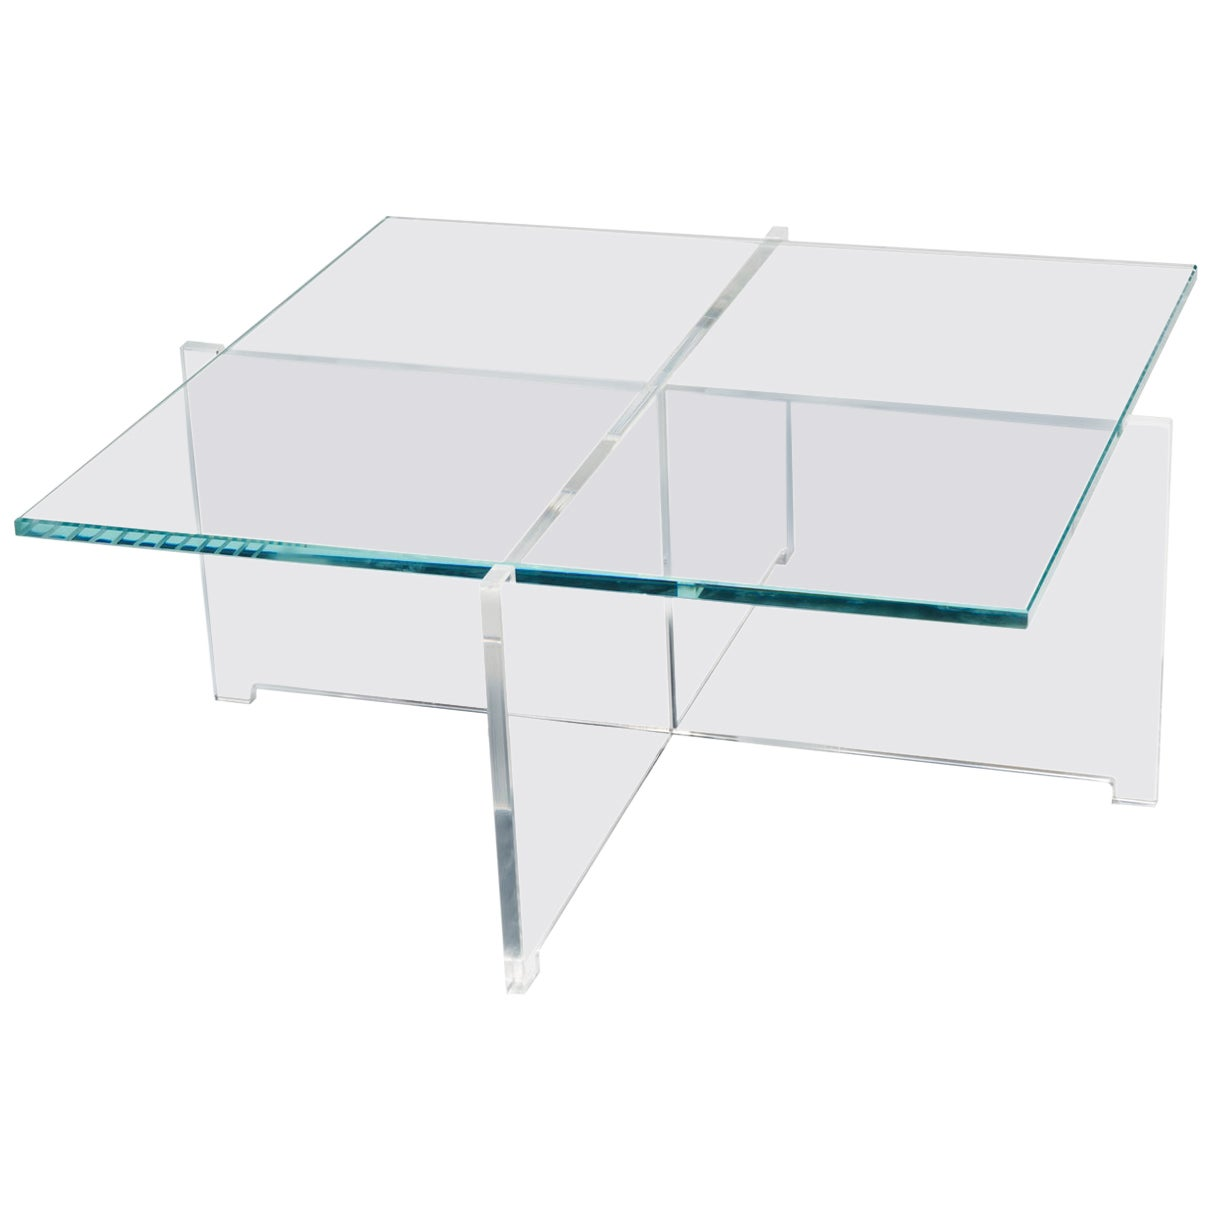 Bodil Kjær 'Crossplex Low Table', Polycarbonate and Glass by Karakter